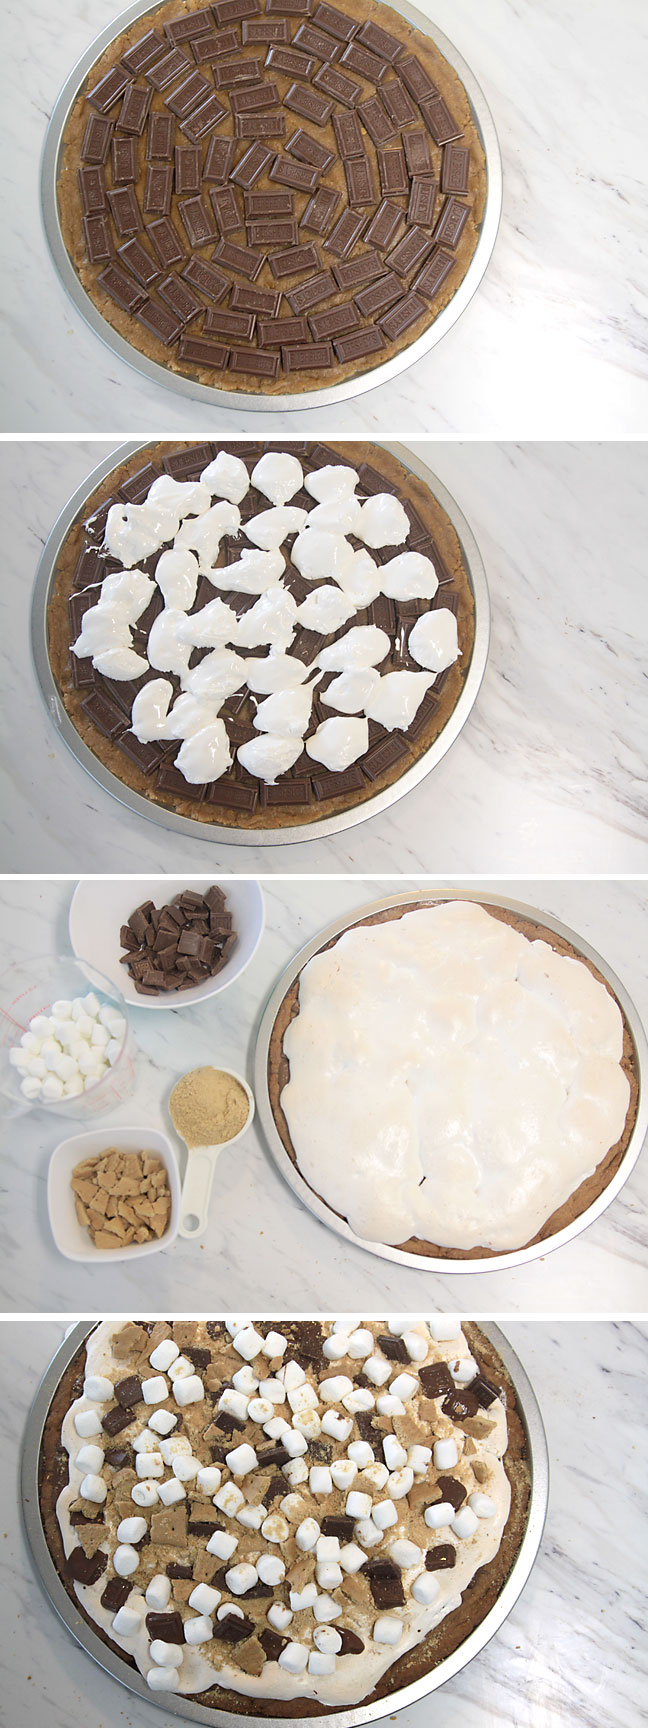 get the great taste of s'mores without the campfire with this easy bake at home s'mores pizza recipe